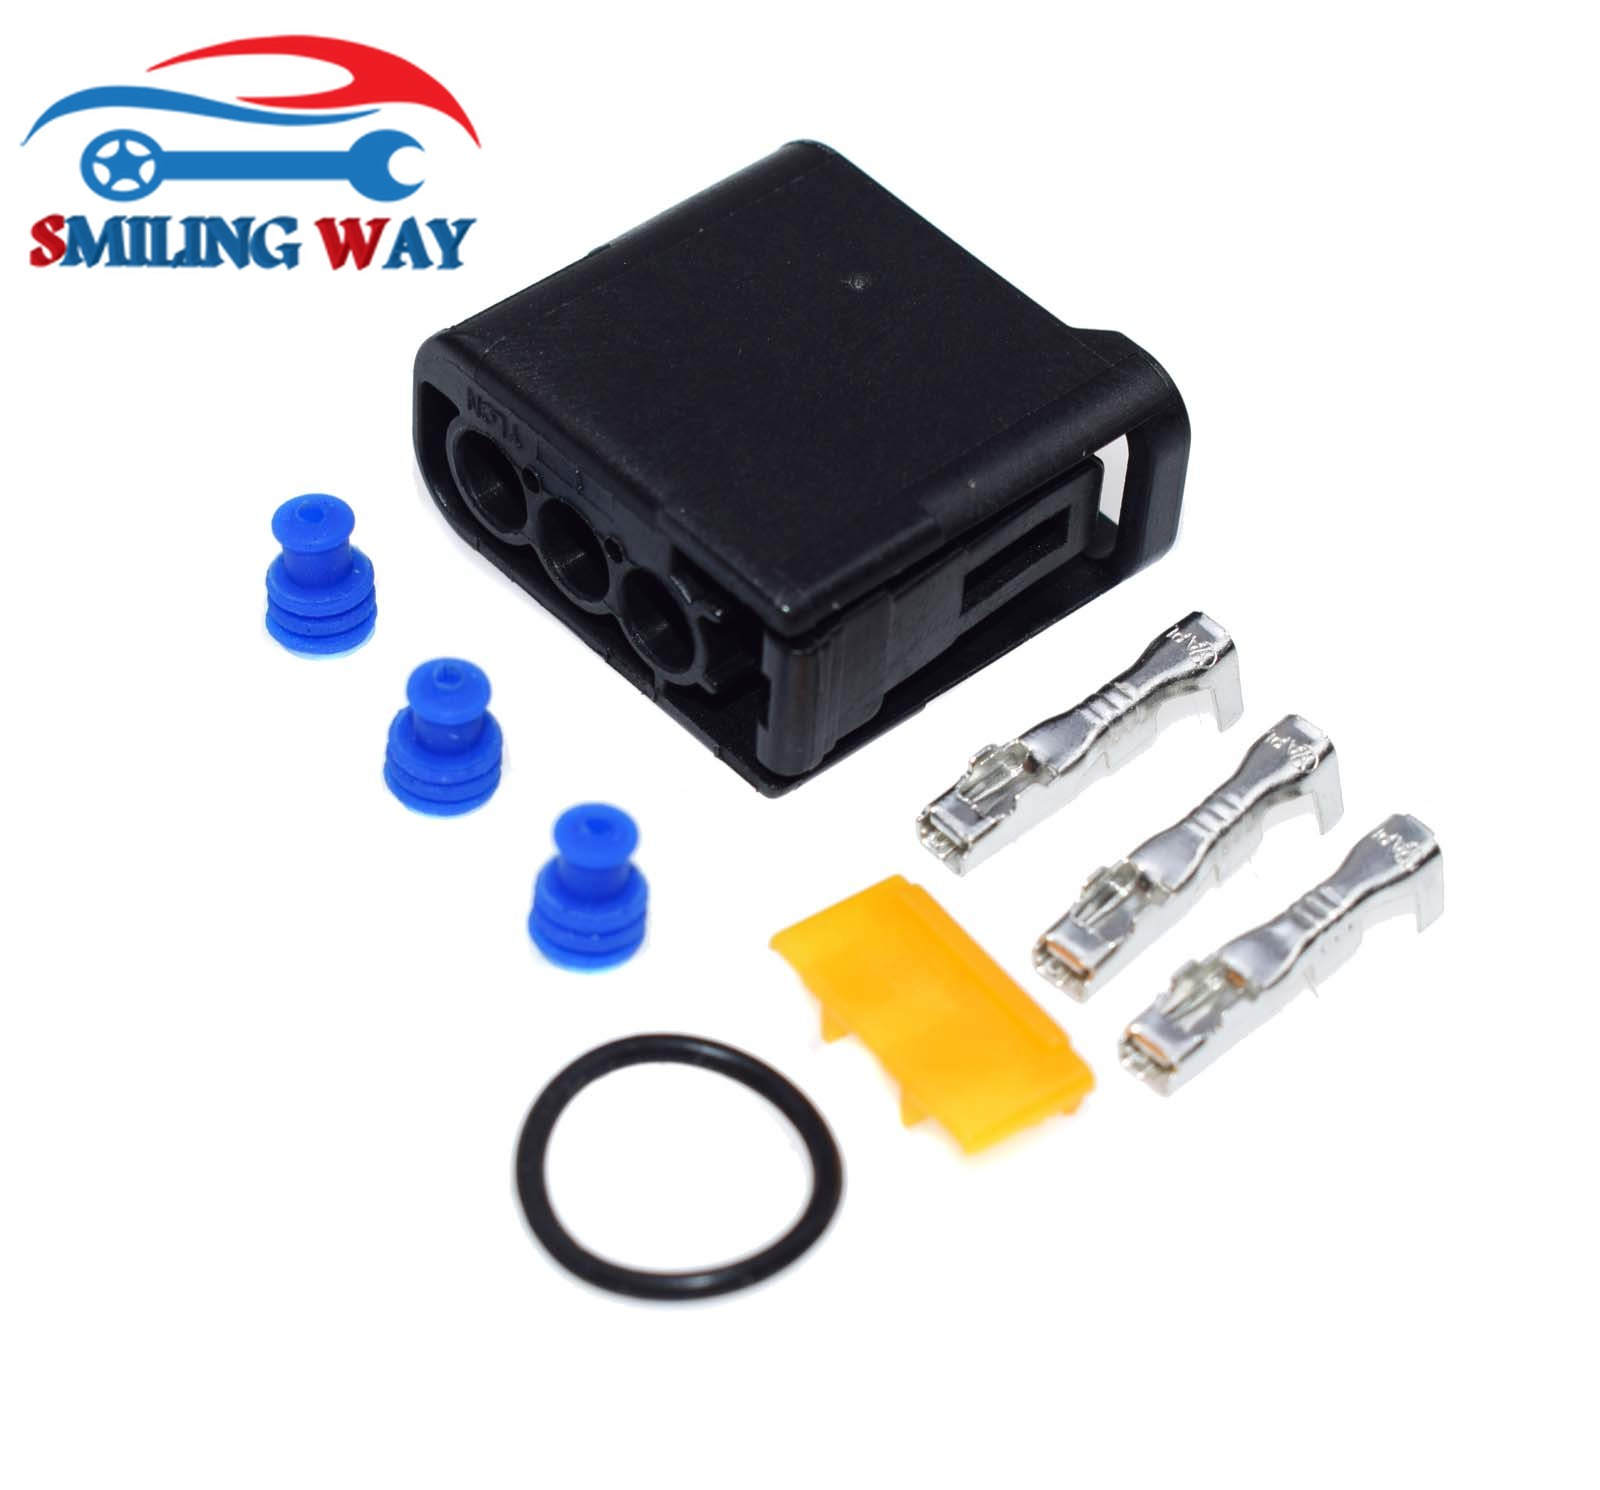 SMILING WAY# Ignition Coil Connector Harness Terminal Plug Seals Kit For  Subaru Impreza WRX STi EJ20 EJ25 EZ30 2002-2013